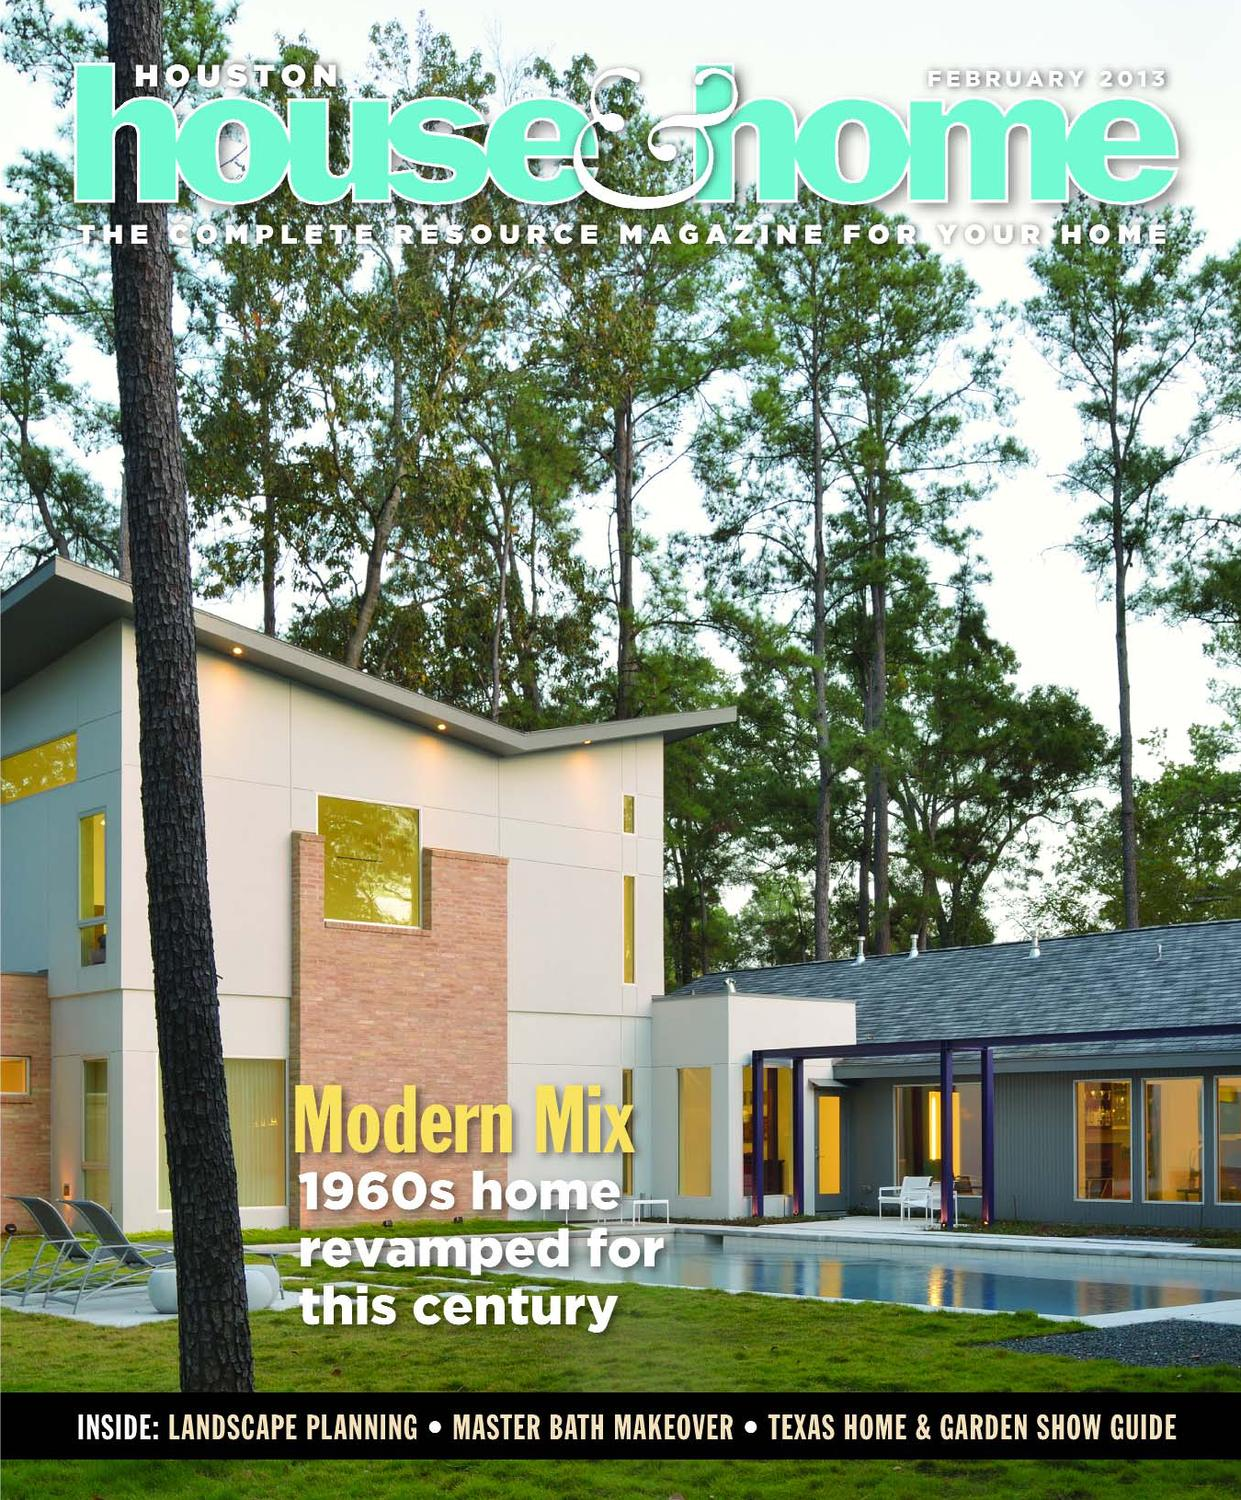 houston house home february 2013 issue by houston house